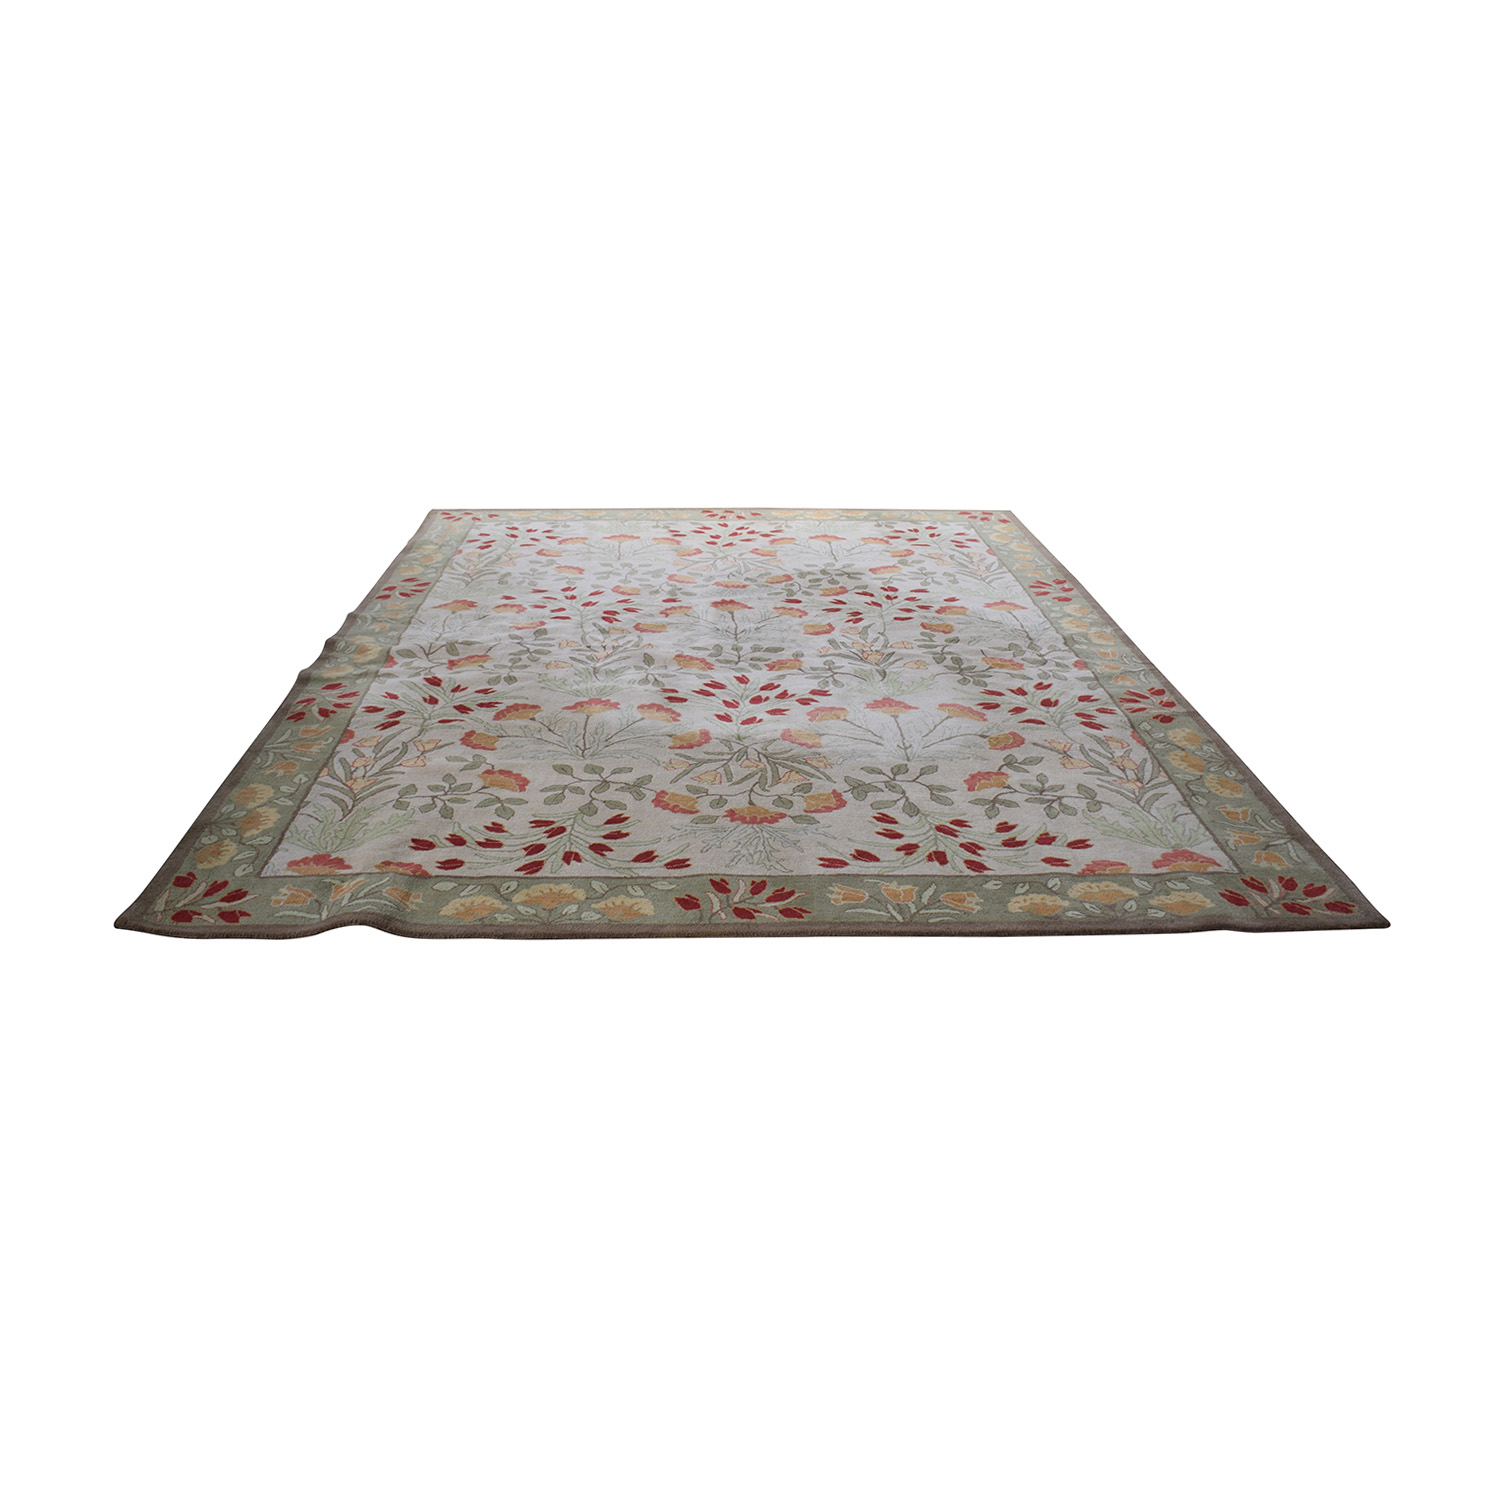 Pottery Barn Pottery Barn Floral Rug with Pad price